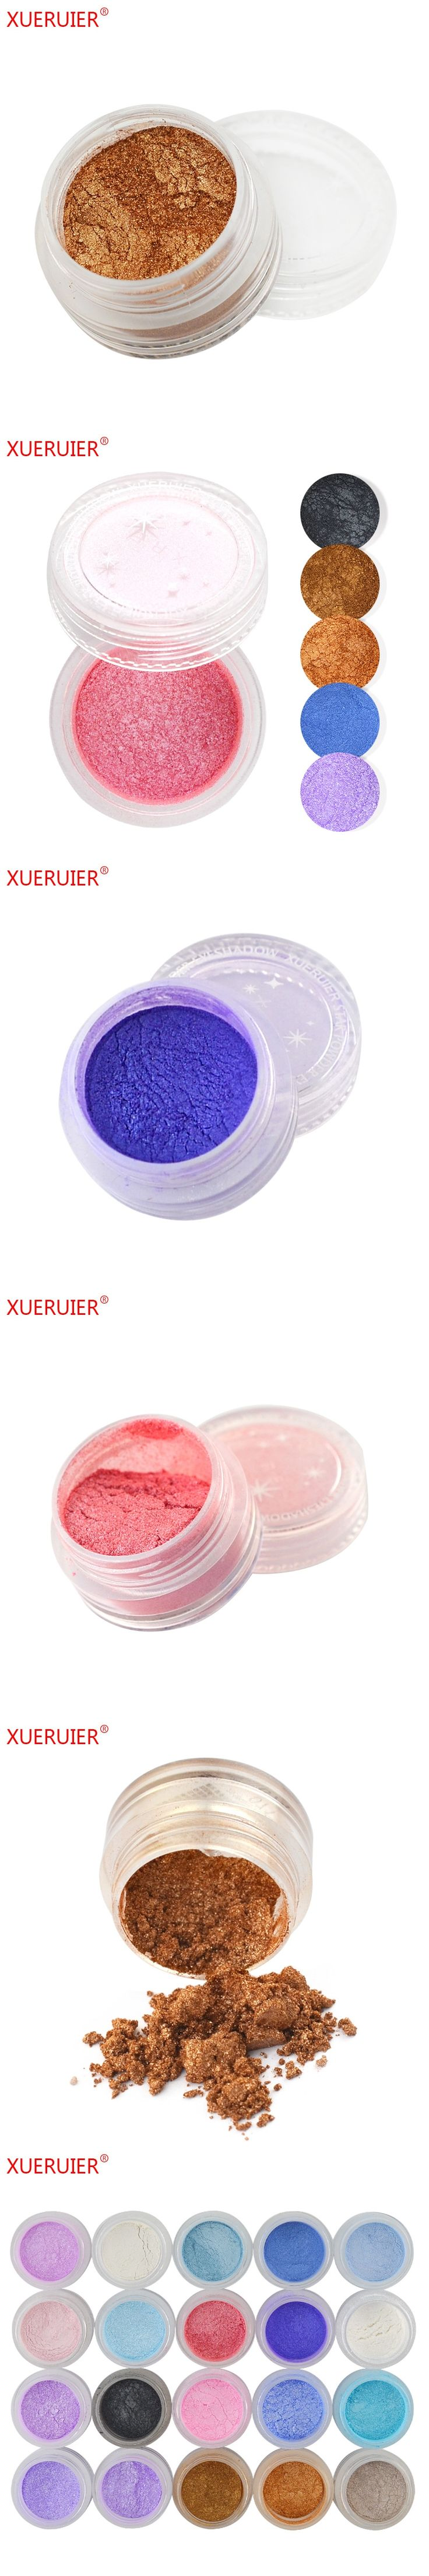 Natural Matte Glitter Eye Shadow Palette Makeup 20 Colors Naked Eyeshadow XUERUIER Brand Nude Shimmer Pigment Eyeshadow Powder